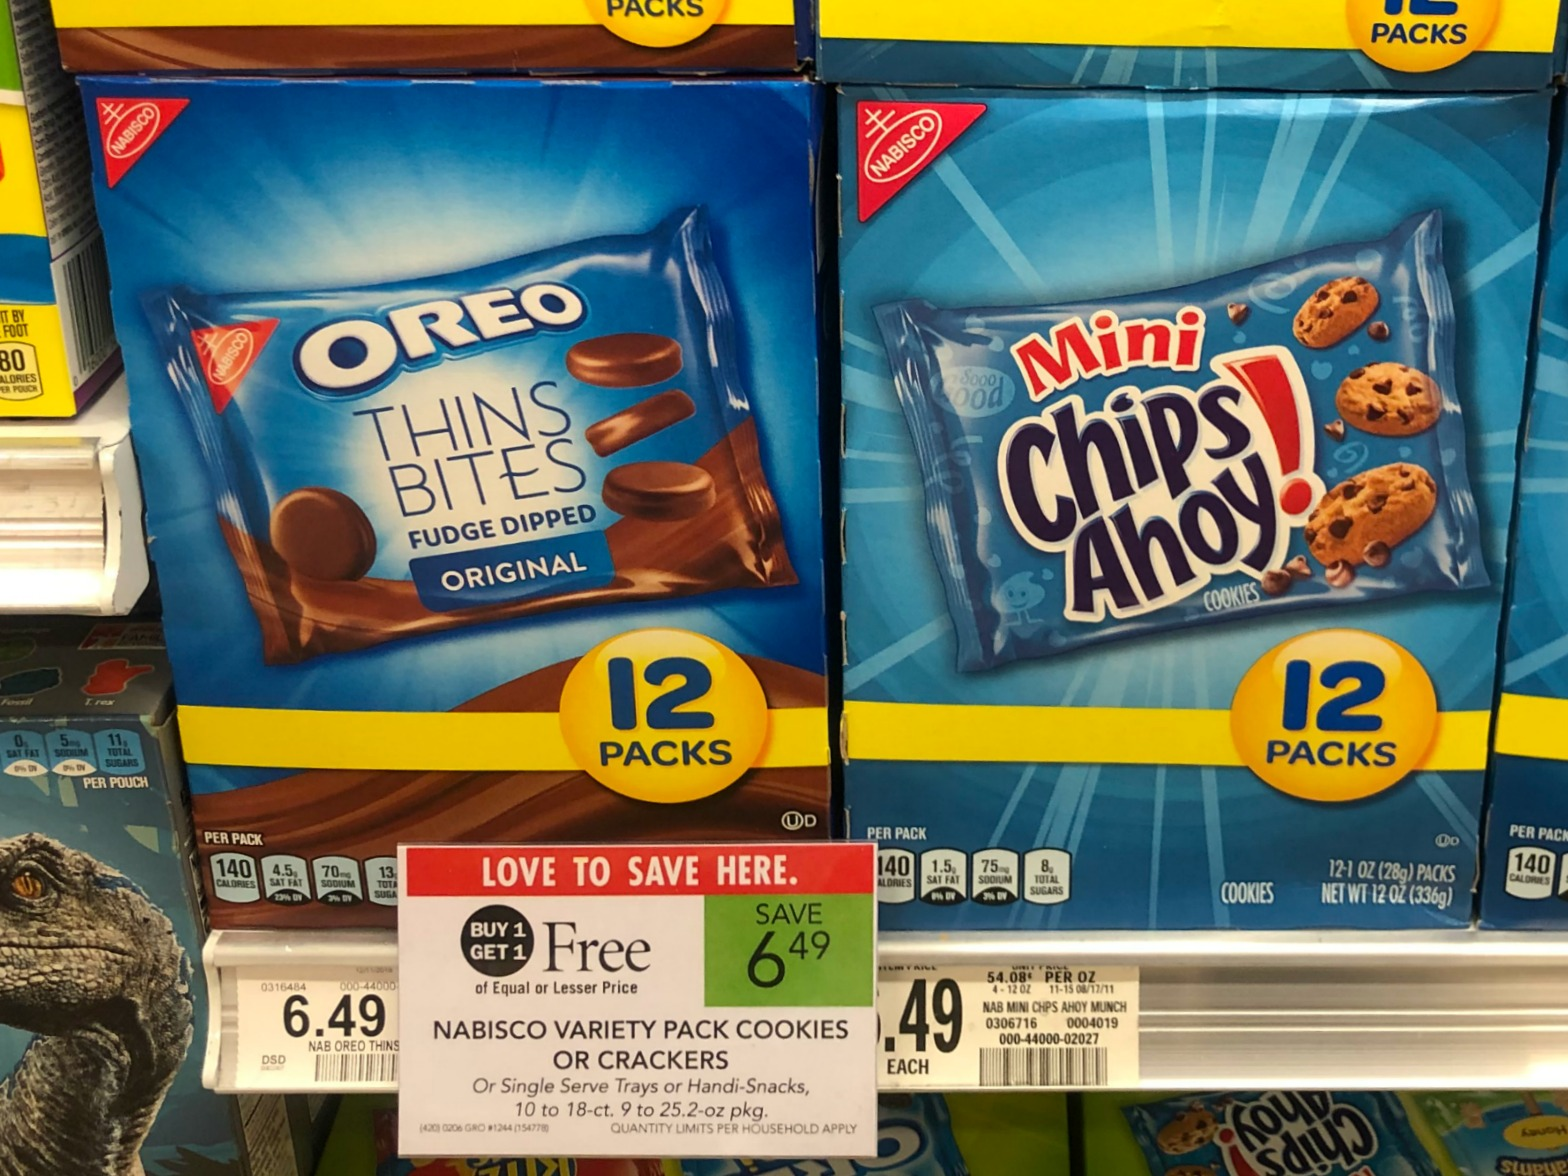 Nabisco Multipack Snacks As Low As $2.50 At Publix (Regular Price $6.49) on I Heart Publix 1